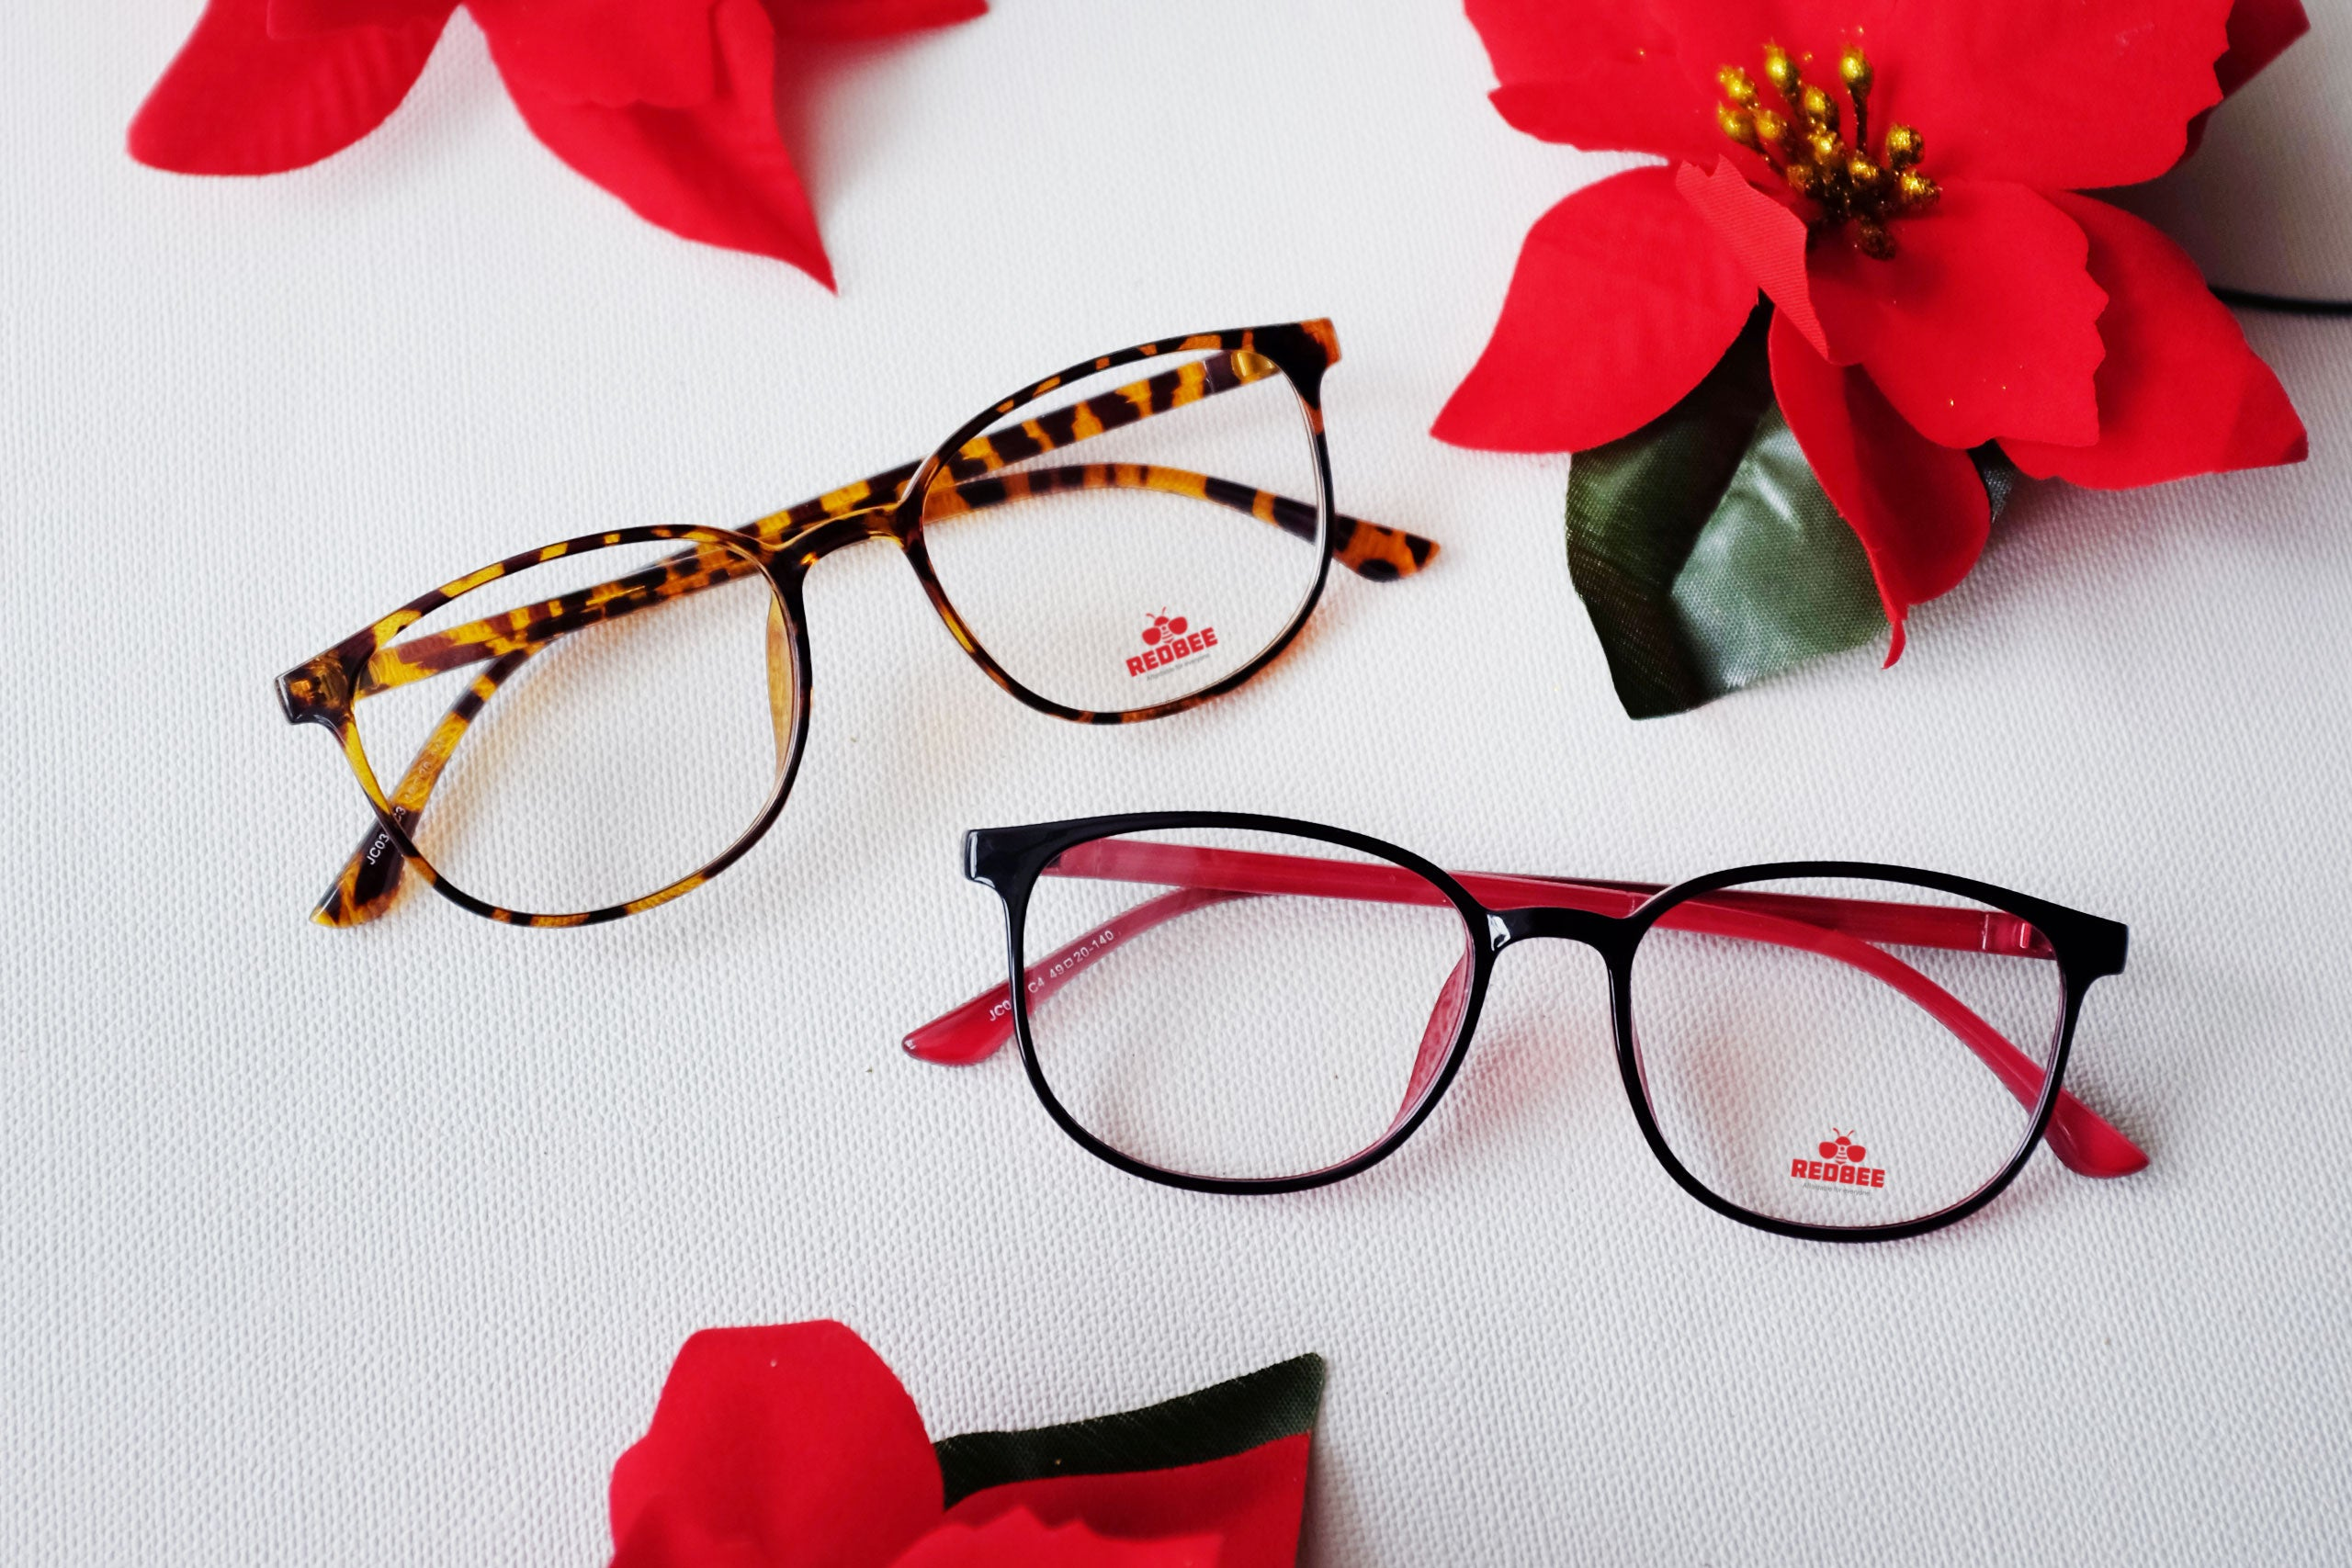 RED BEE Eyewear